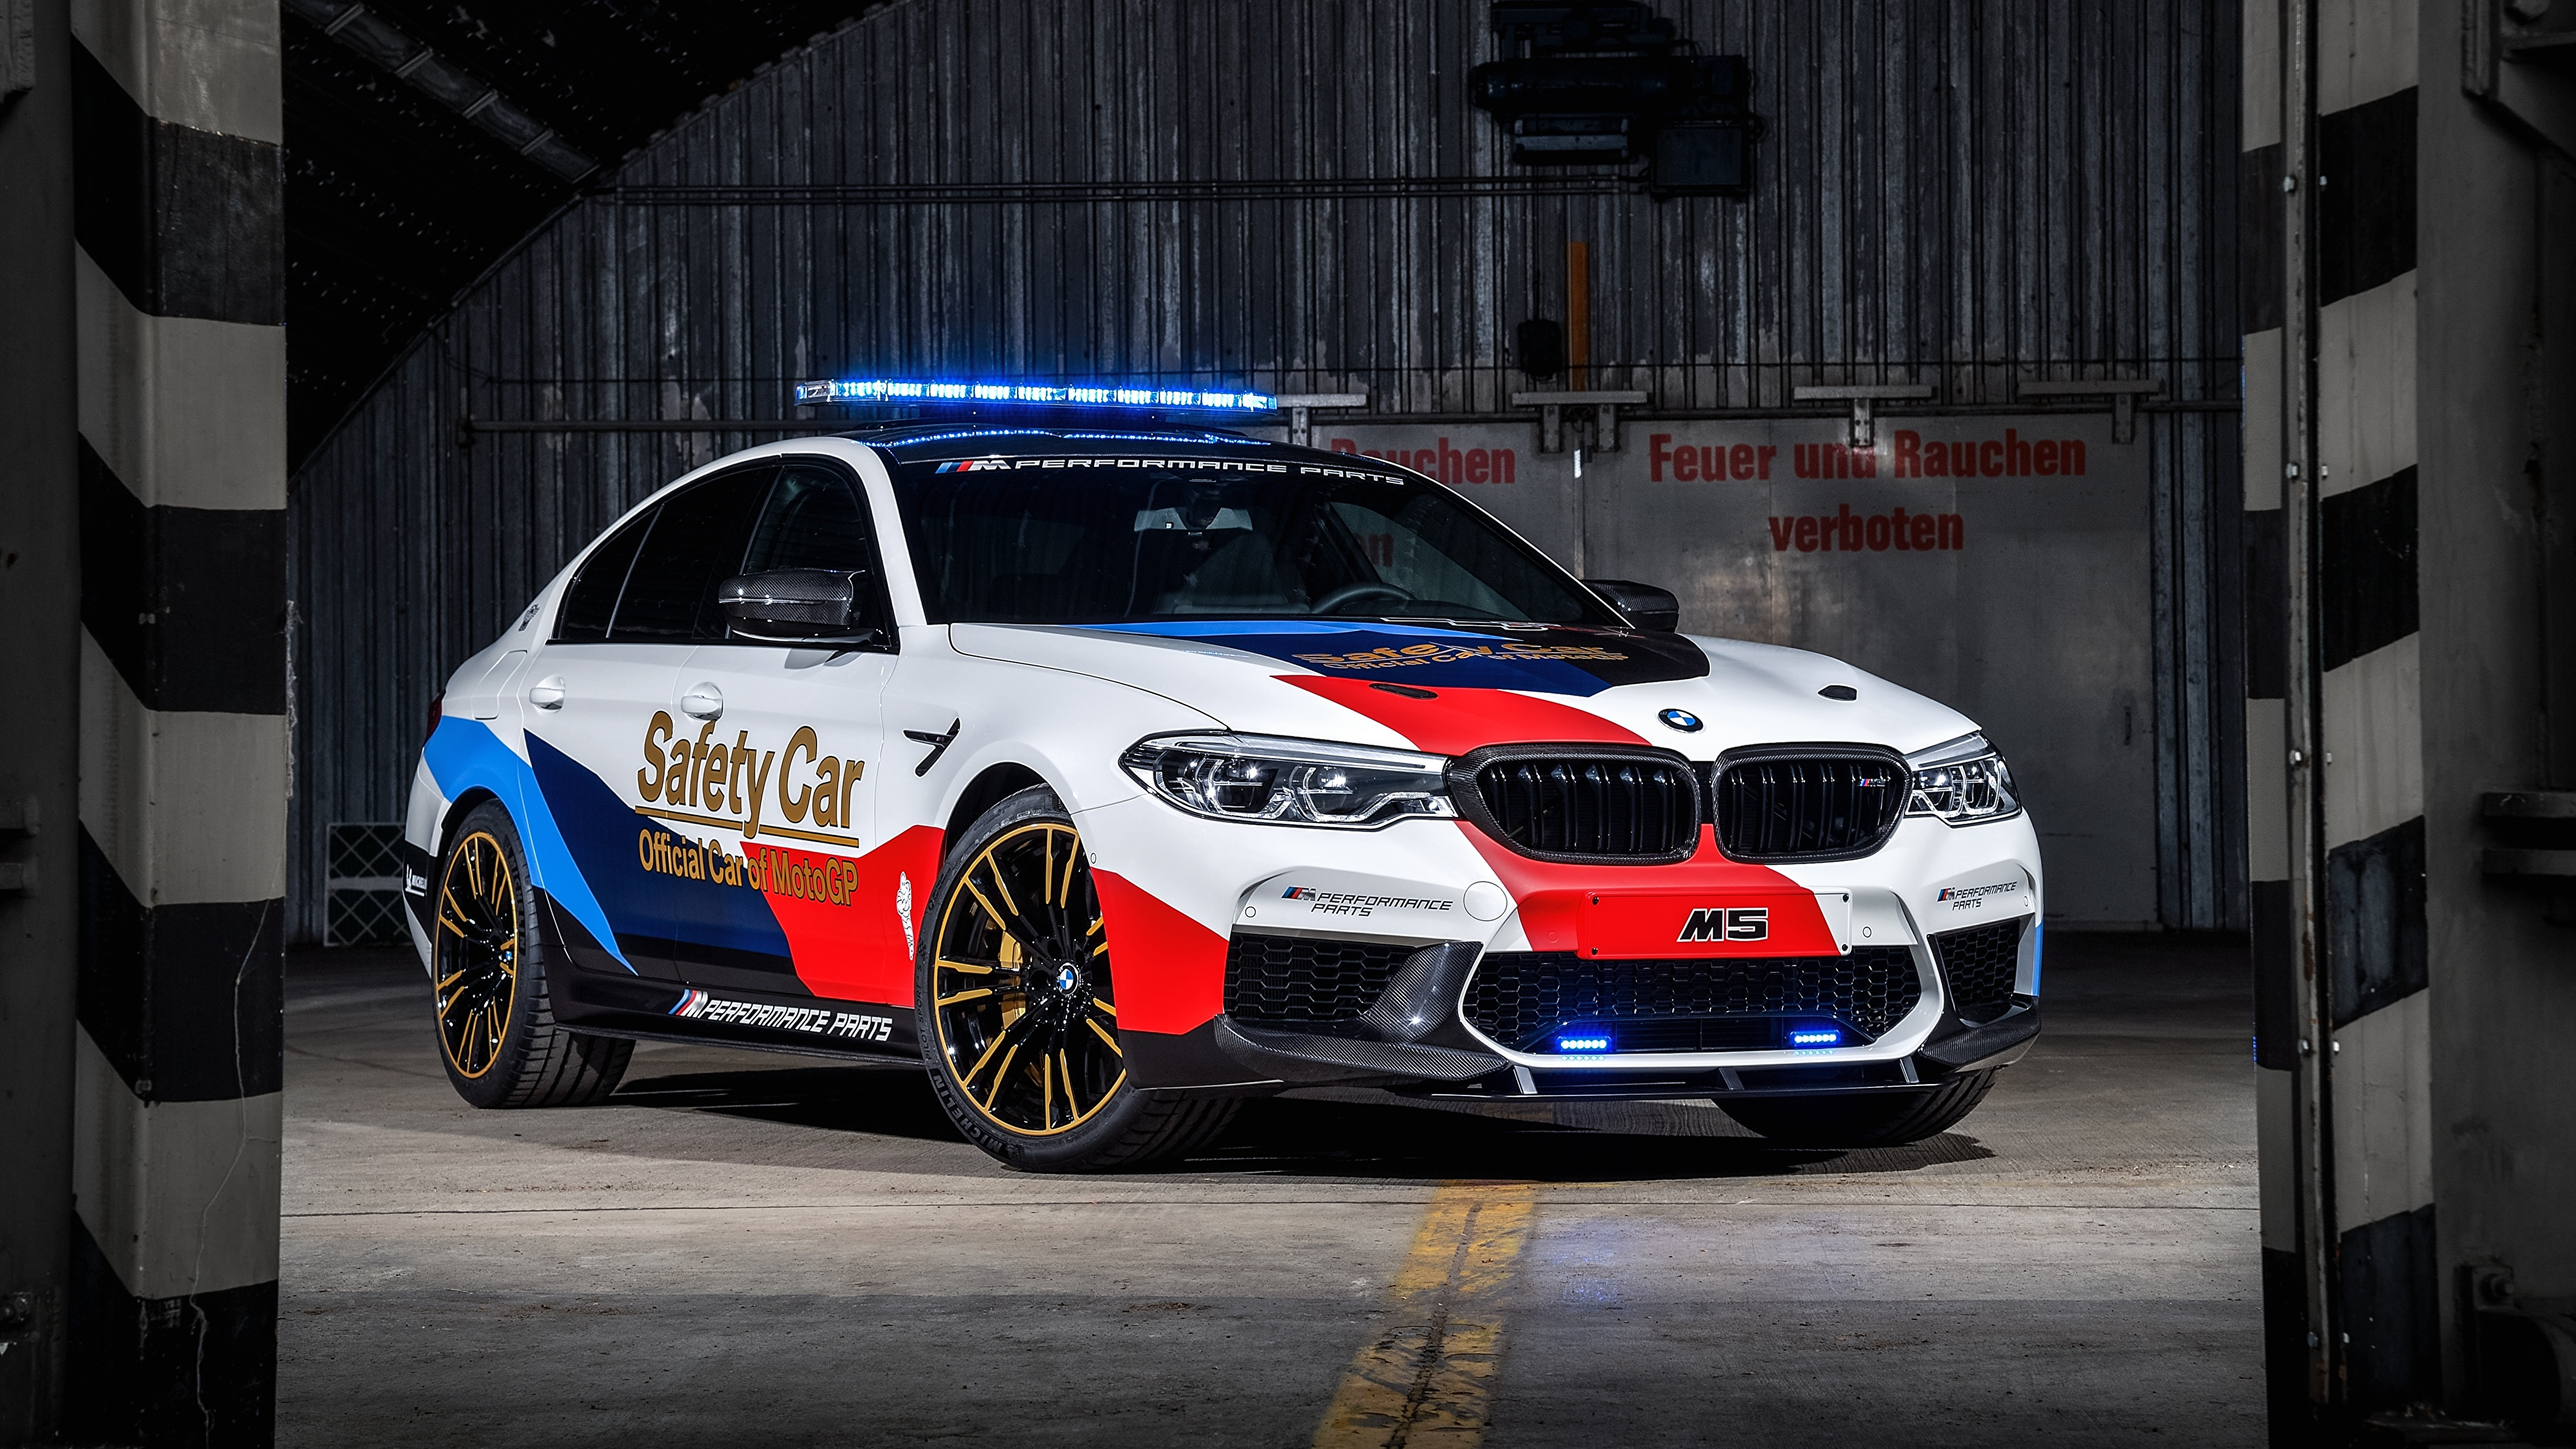 Images BMW Tuning 2018 M5 MotoGP Safety Car auto 3840x2160 Cars automobile